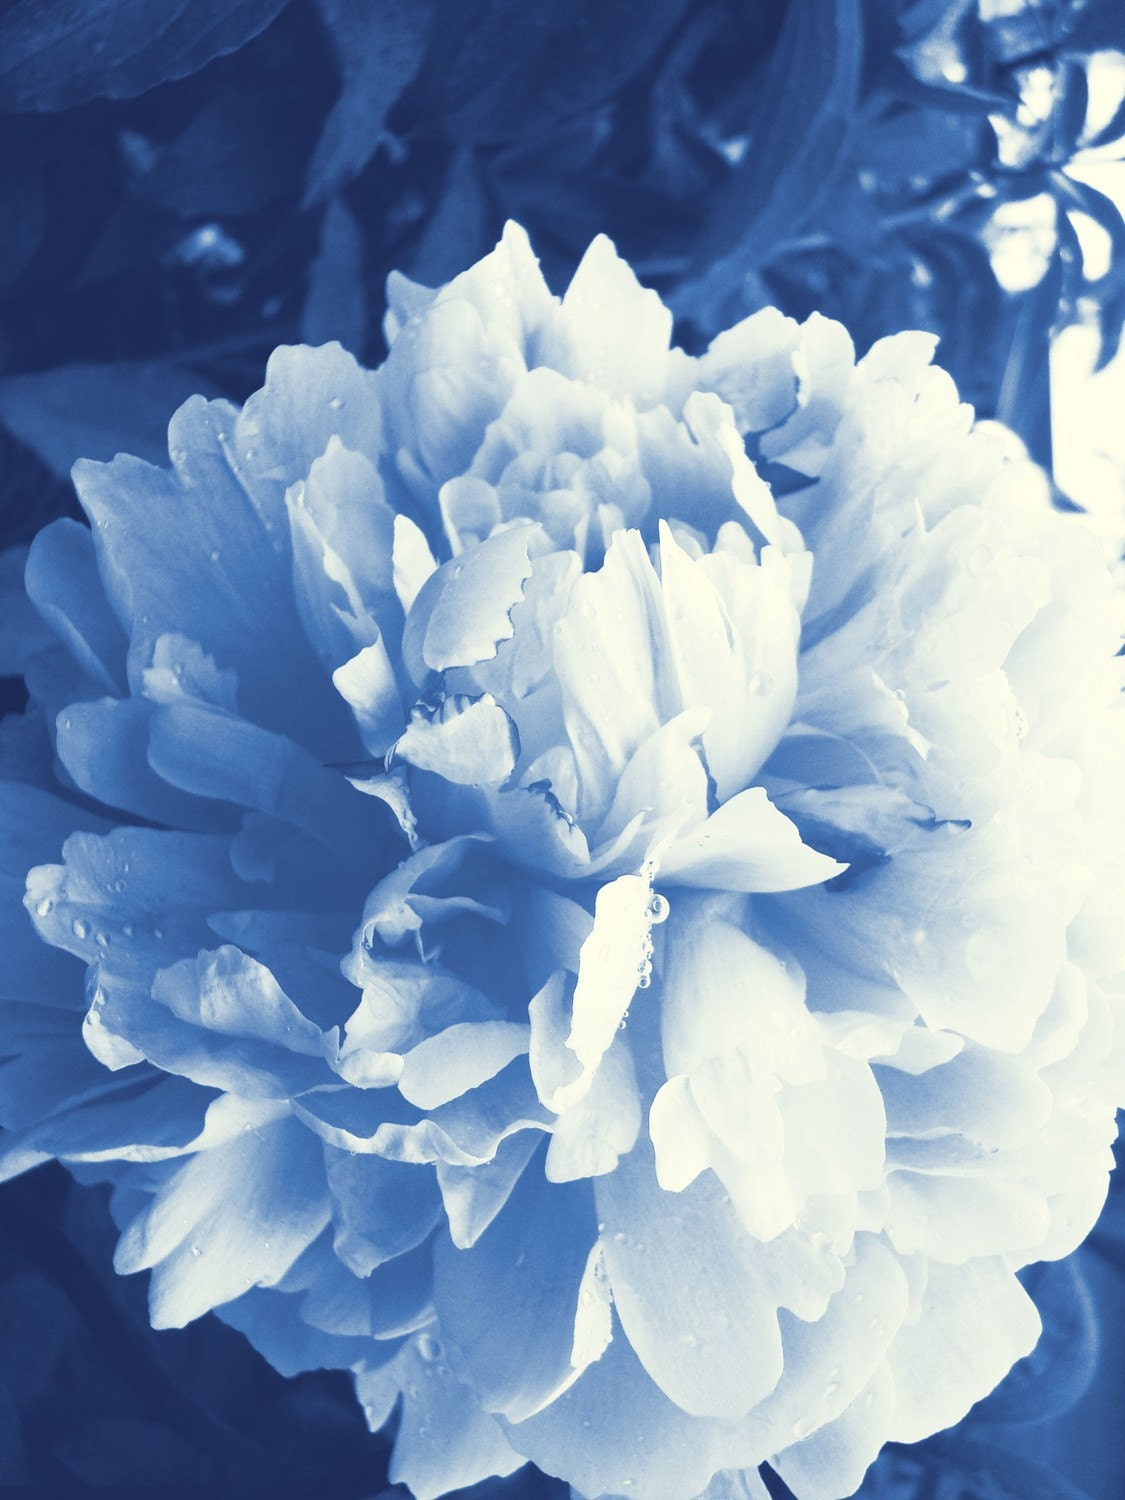 Blue Peony 8 x10 Matted fine art Print Frame size is 11 X 14 - artyecological